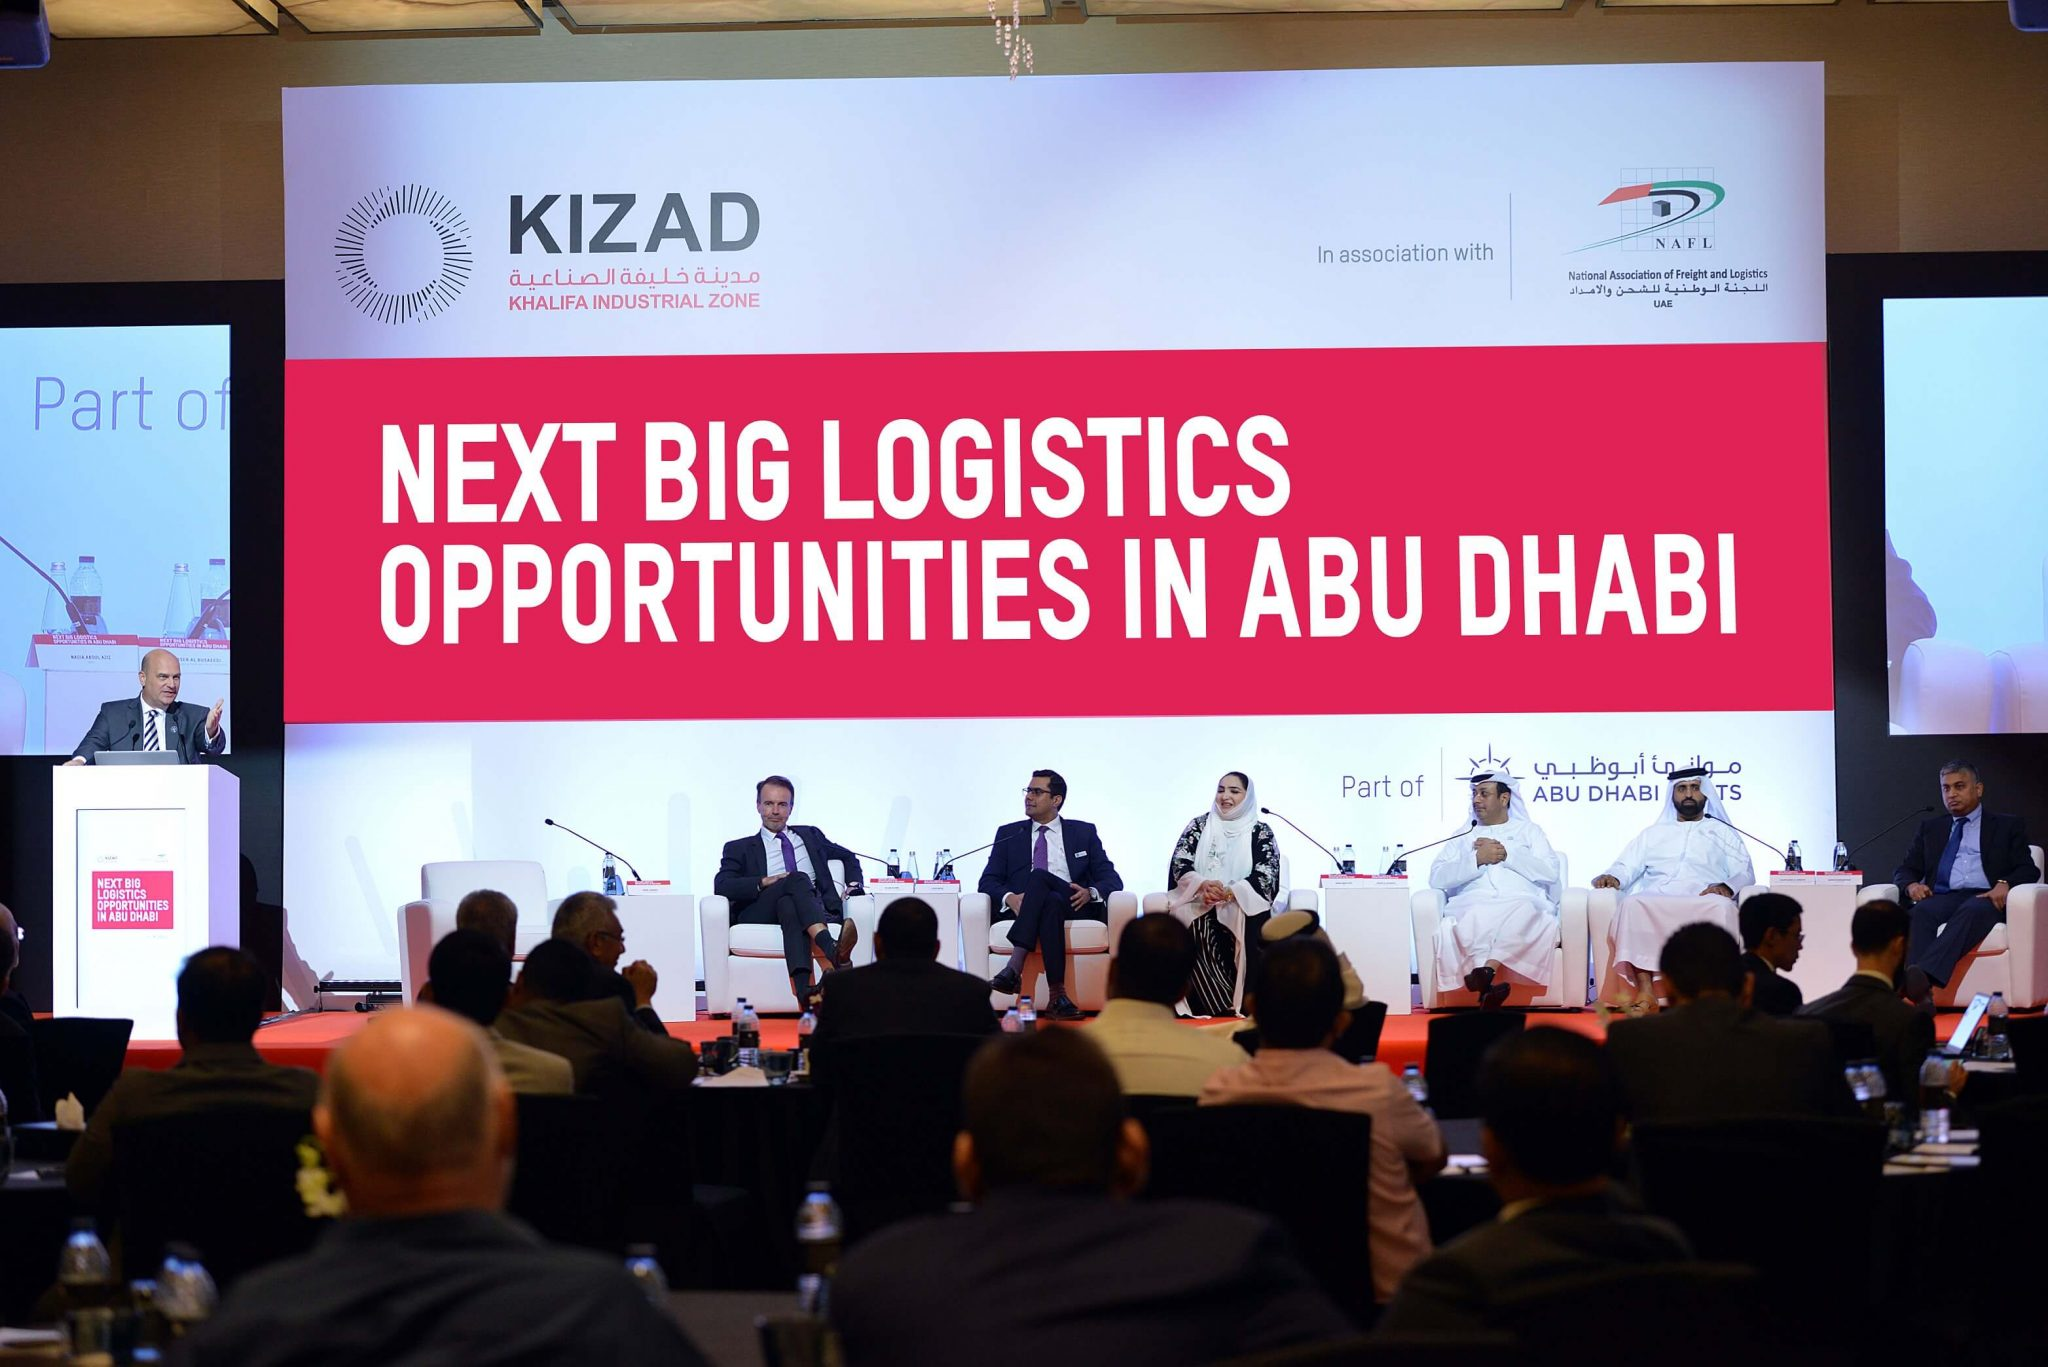 KIZAD highlights array of logistics solutions that are key to